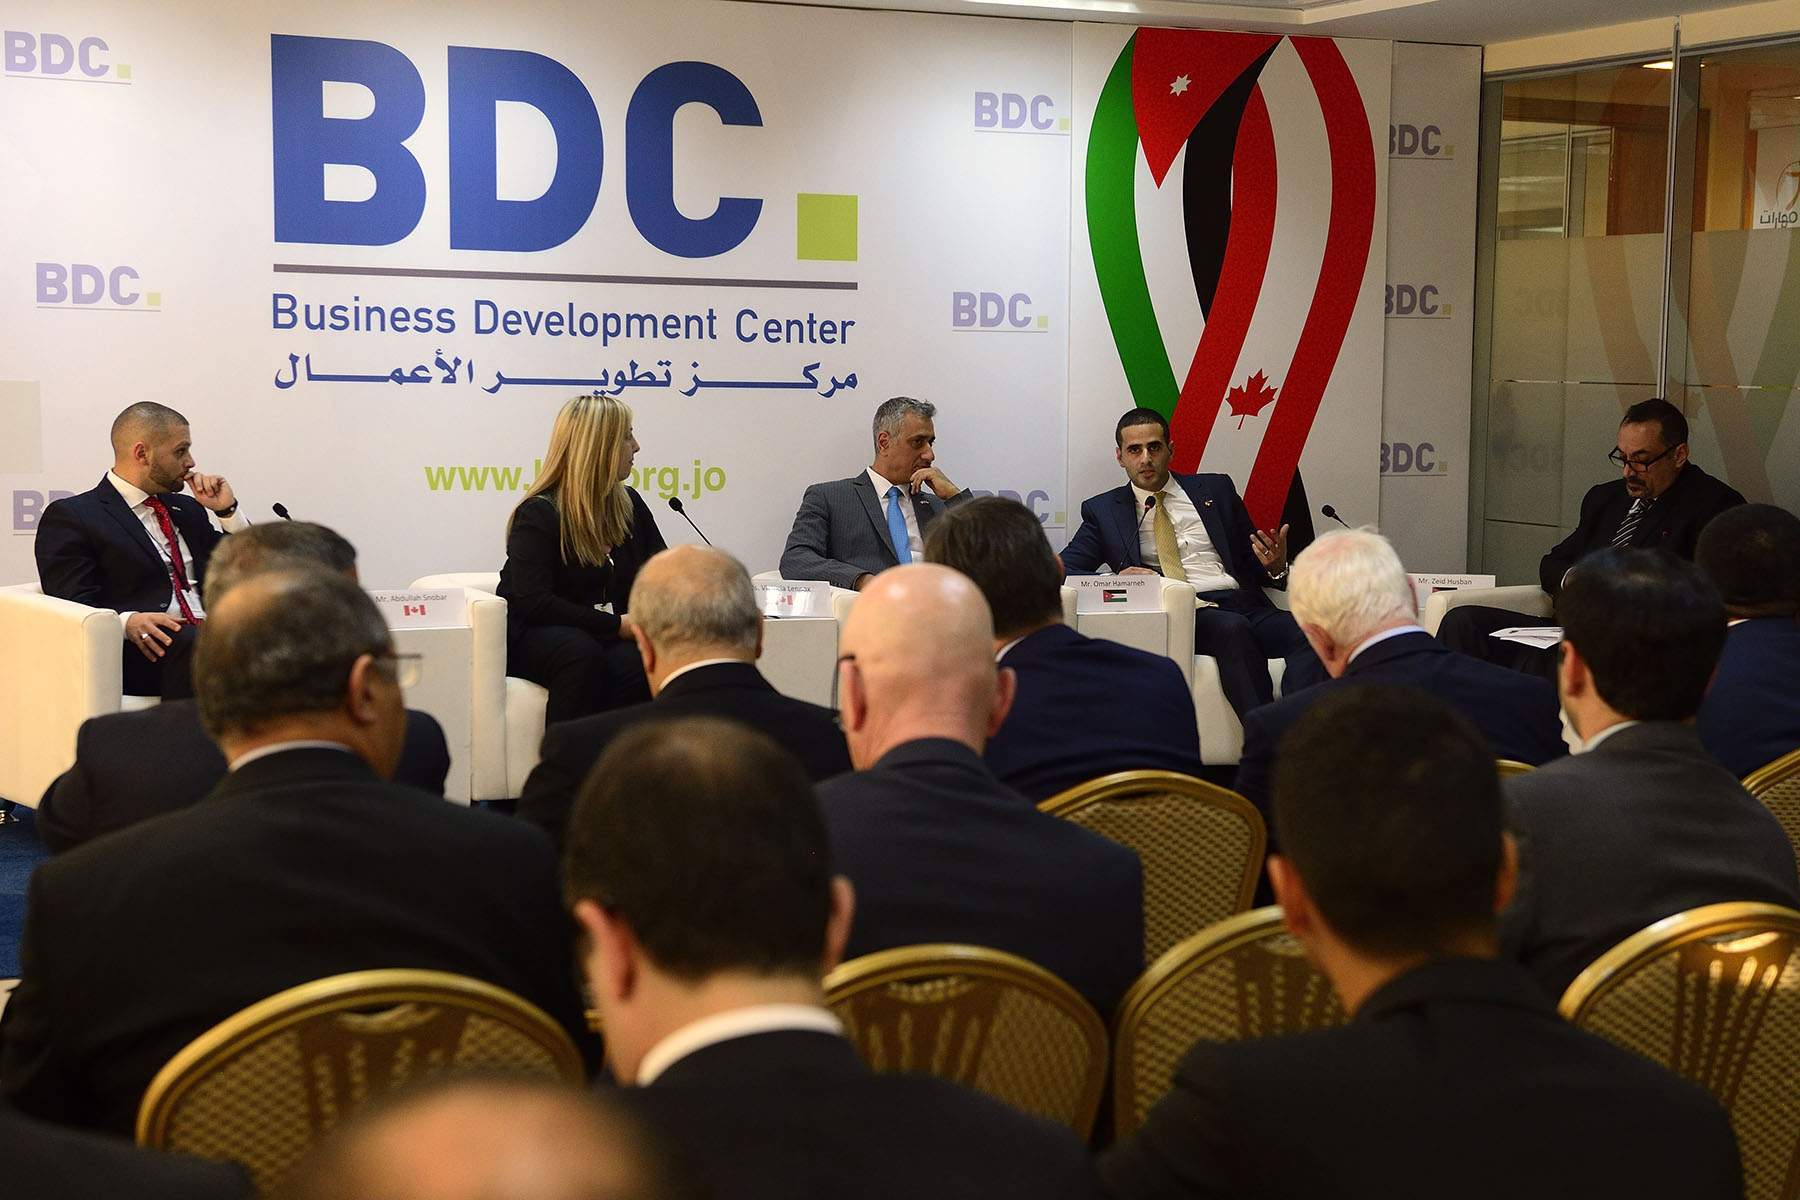 Established in 2004 the BDC is a non-profit organization committed to fostering economic development and public reform in Jordan and the Middle East.